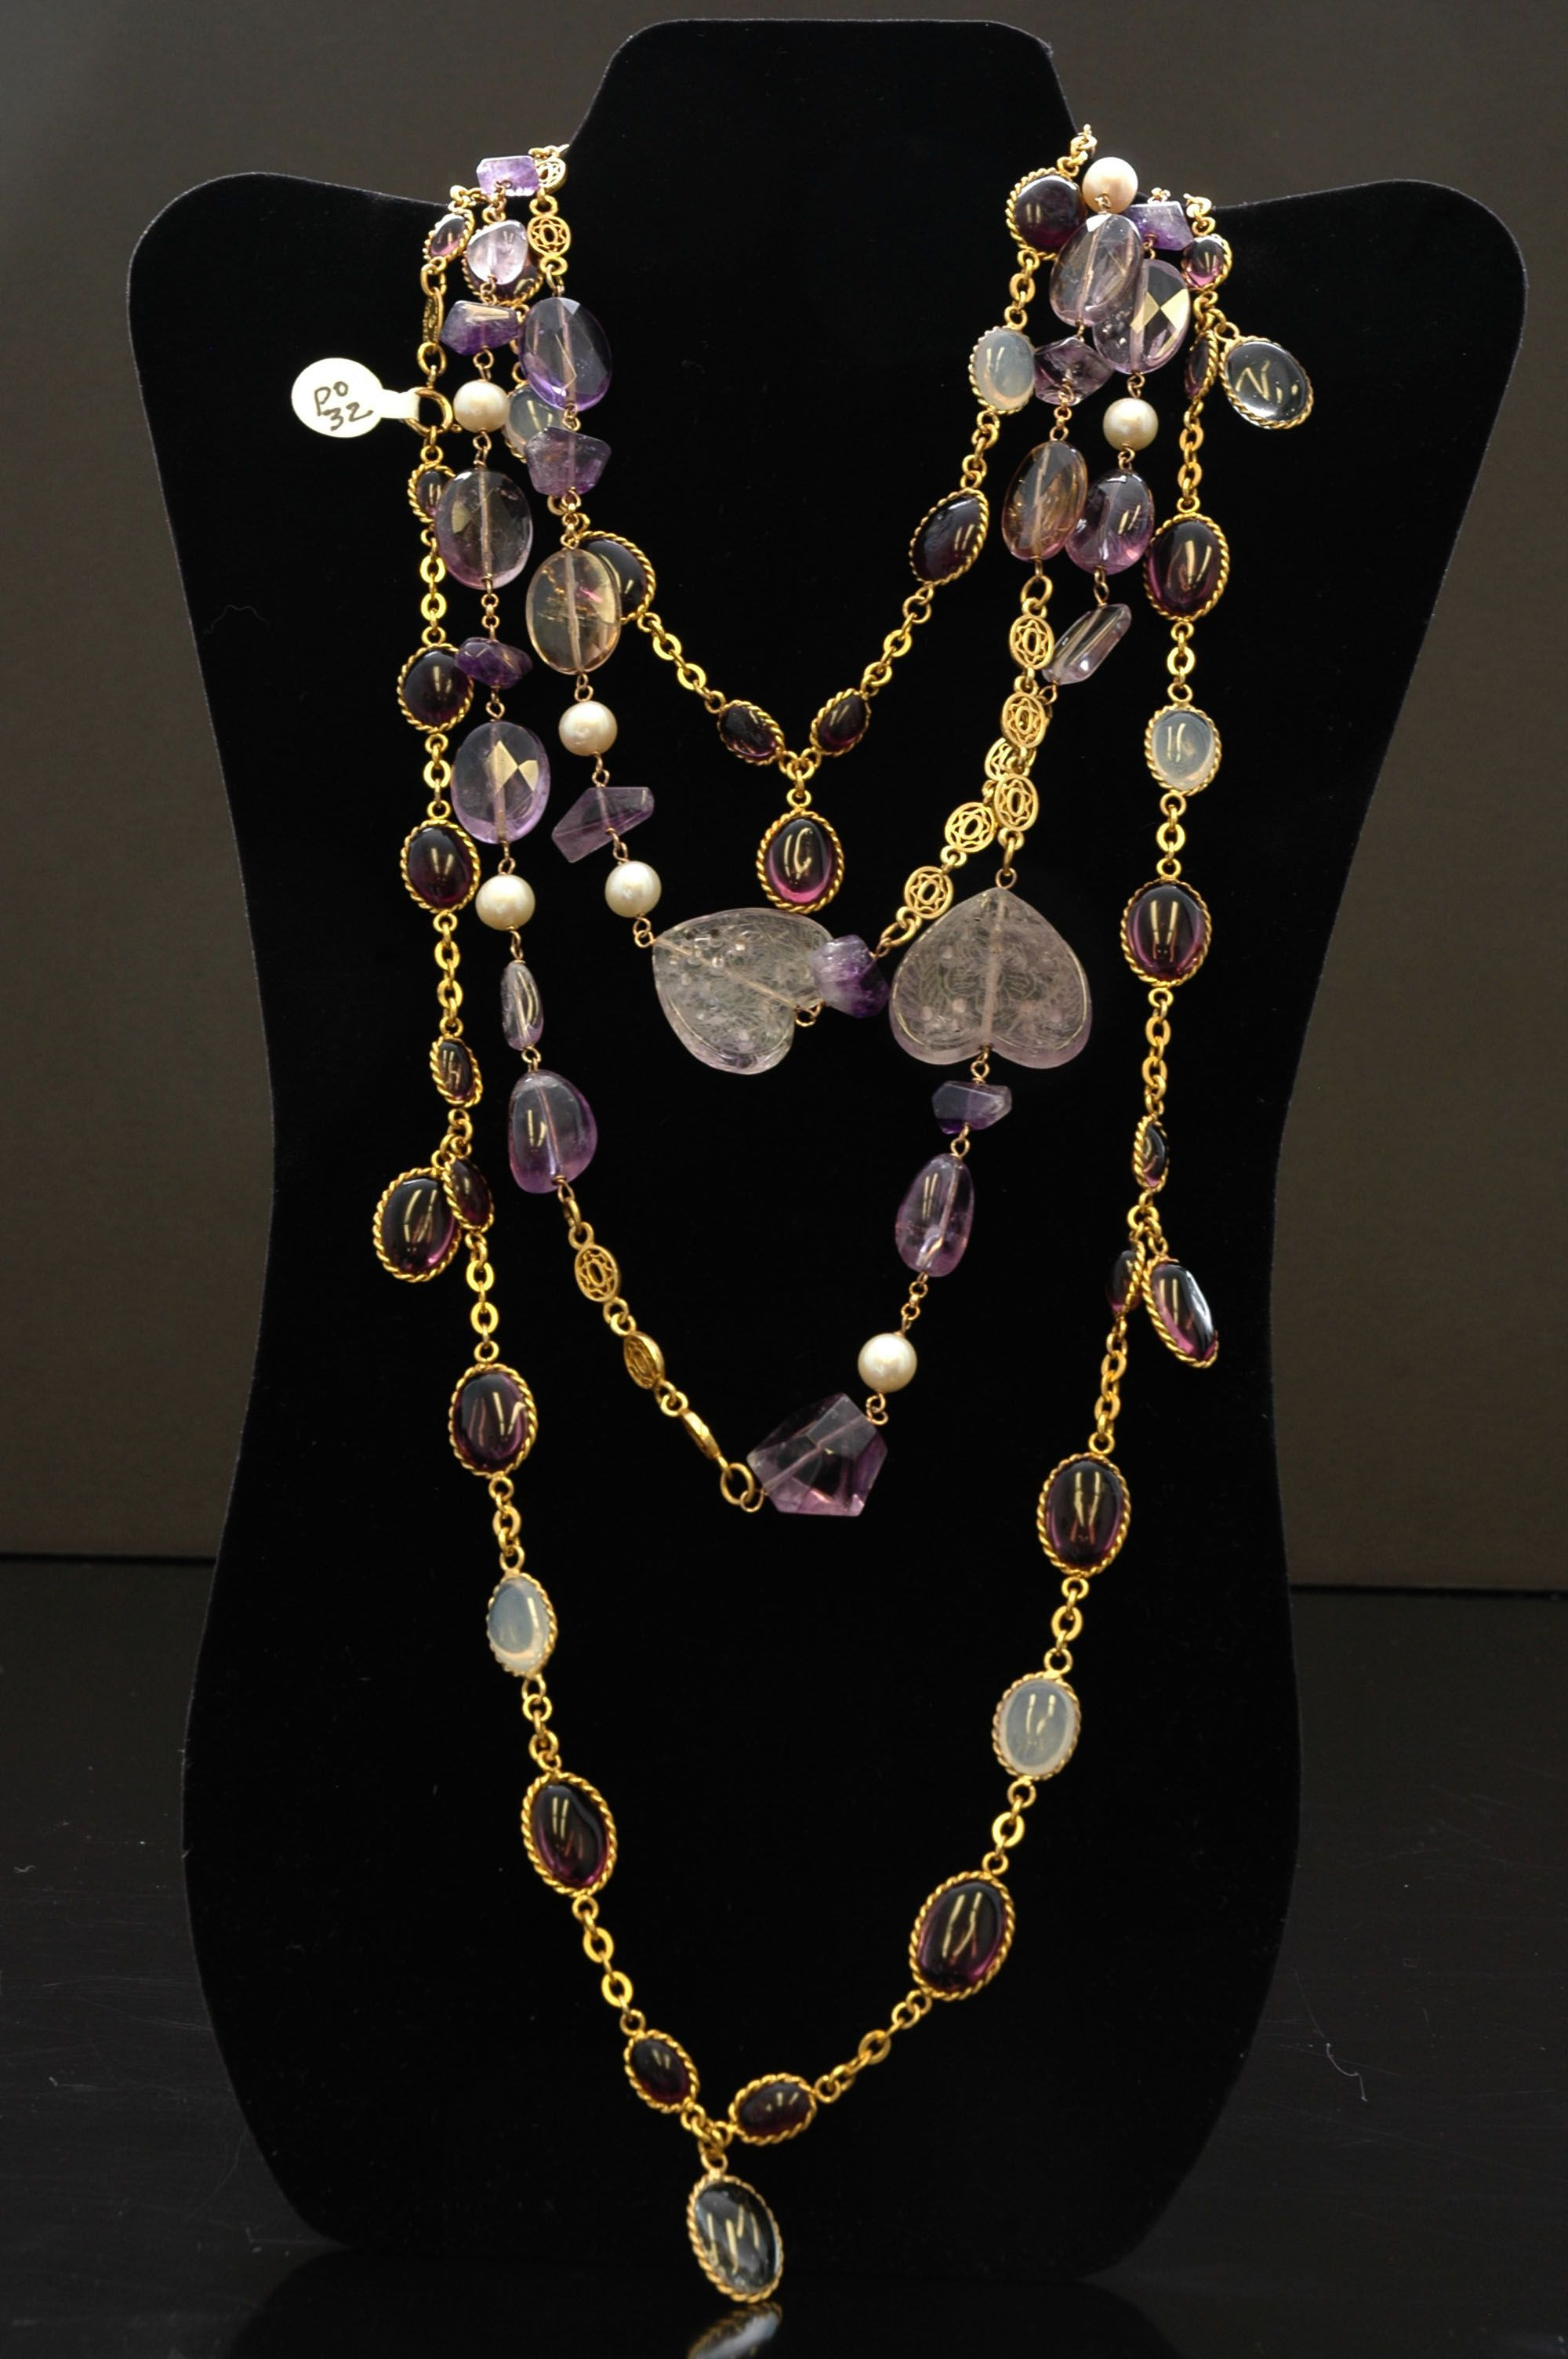 49d16b14028 Vintage Chanel Necklace with Pearls and Lilac Gripoix Disks